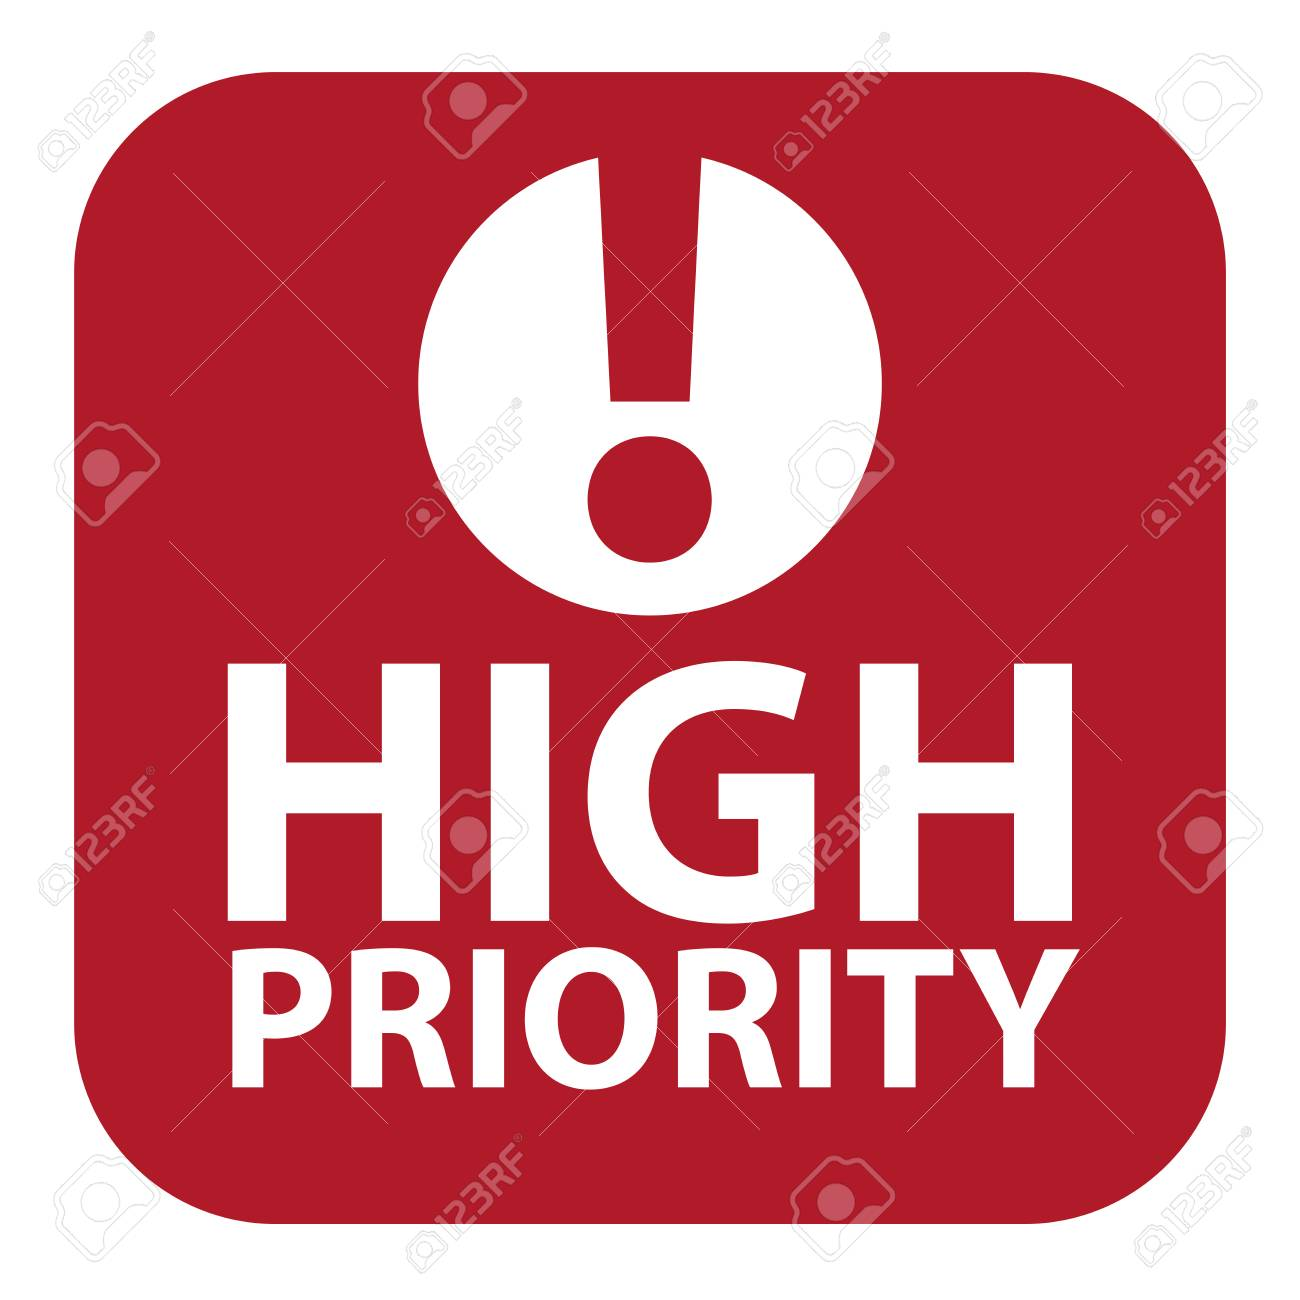 Red Square High Priority Icon, Sign, Sticker or Label Isolated